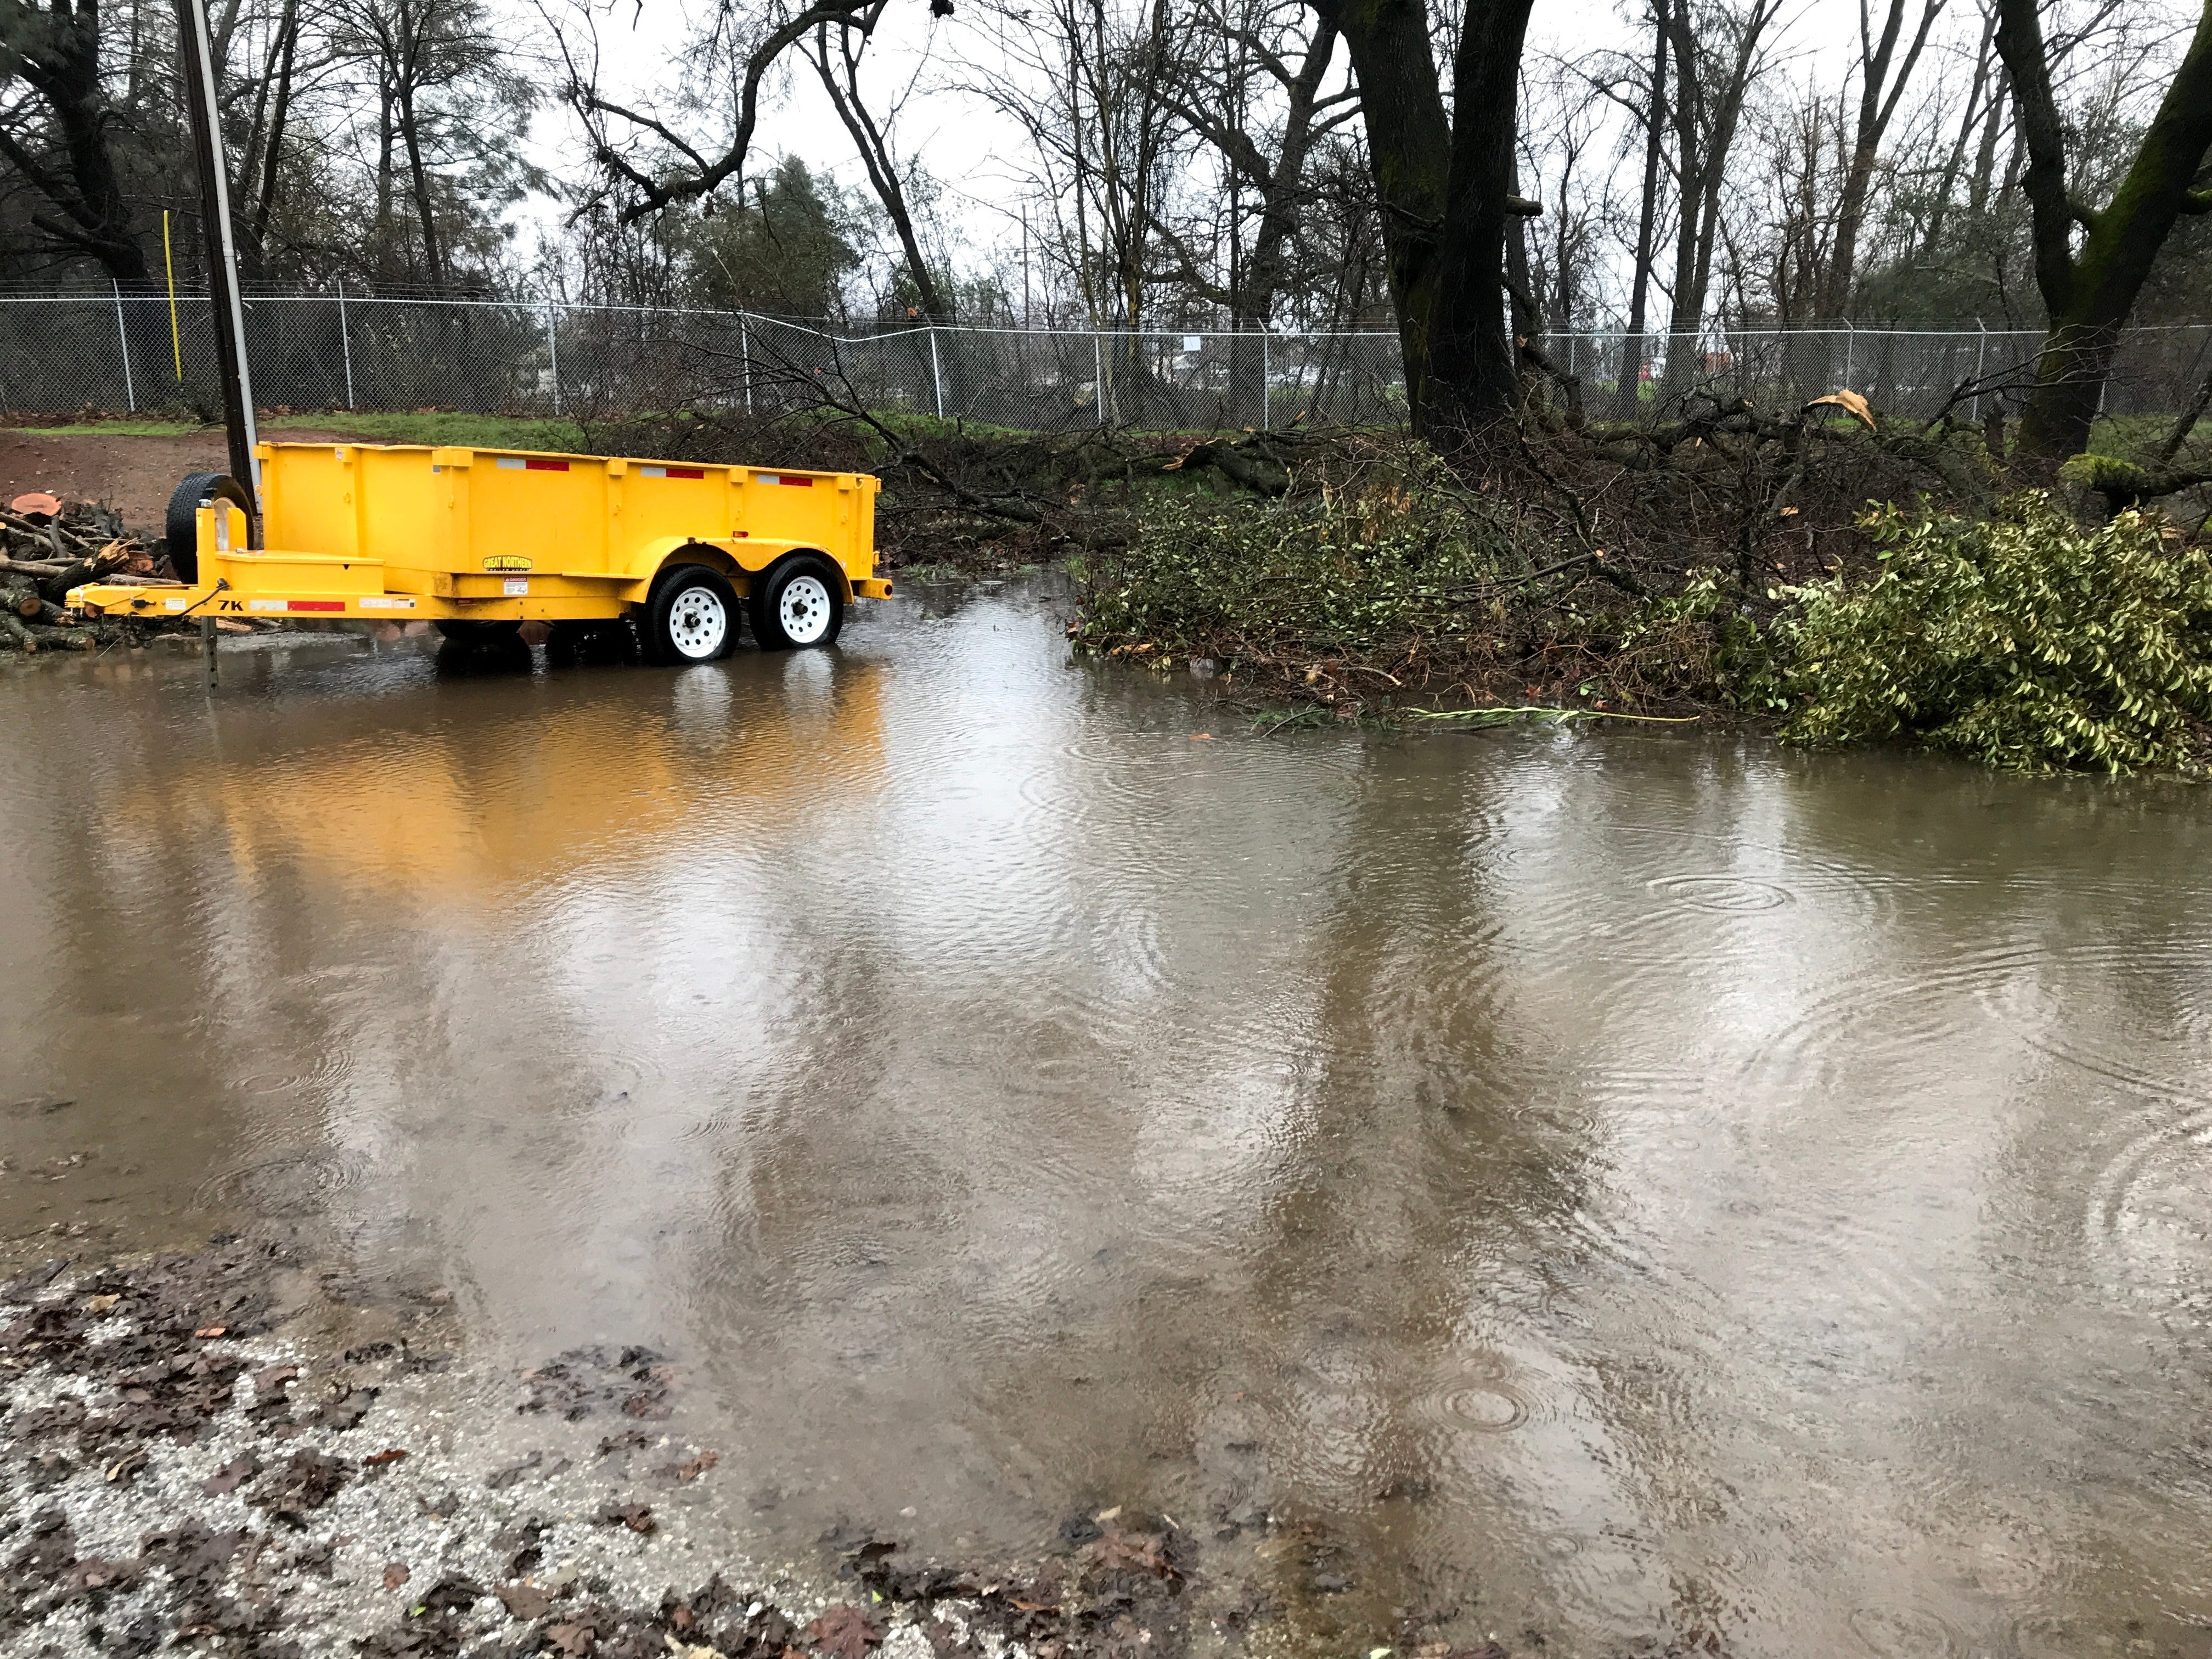 Standing water in south Redding on Wednesday, Feb. 27, 2019.